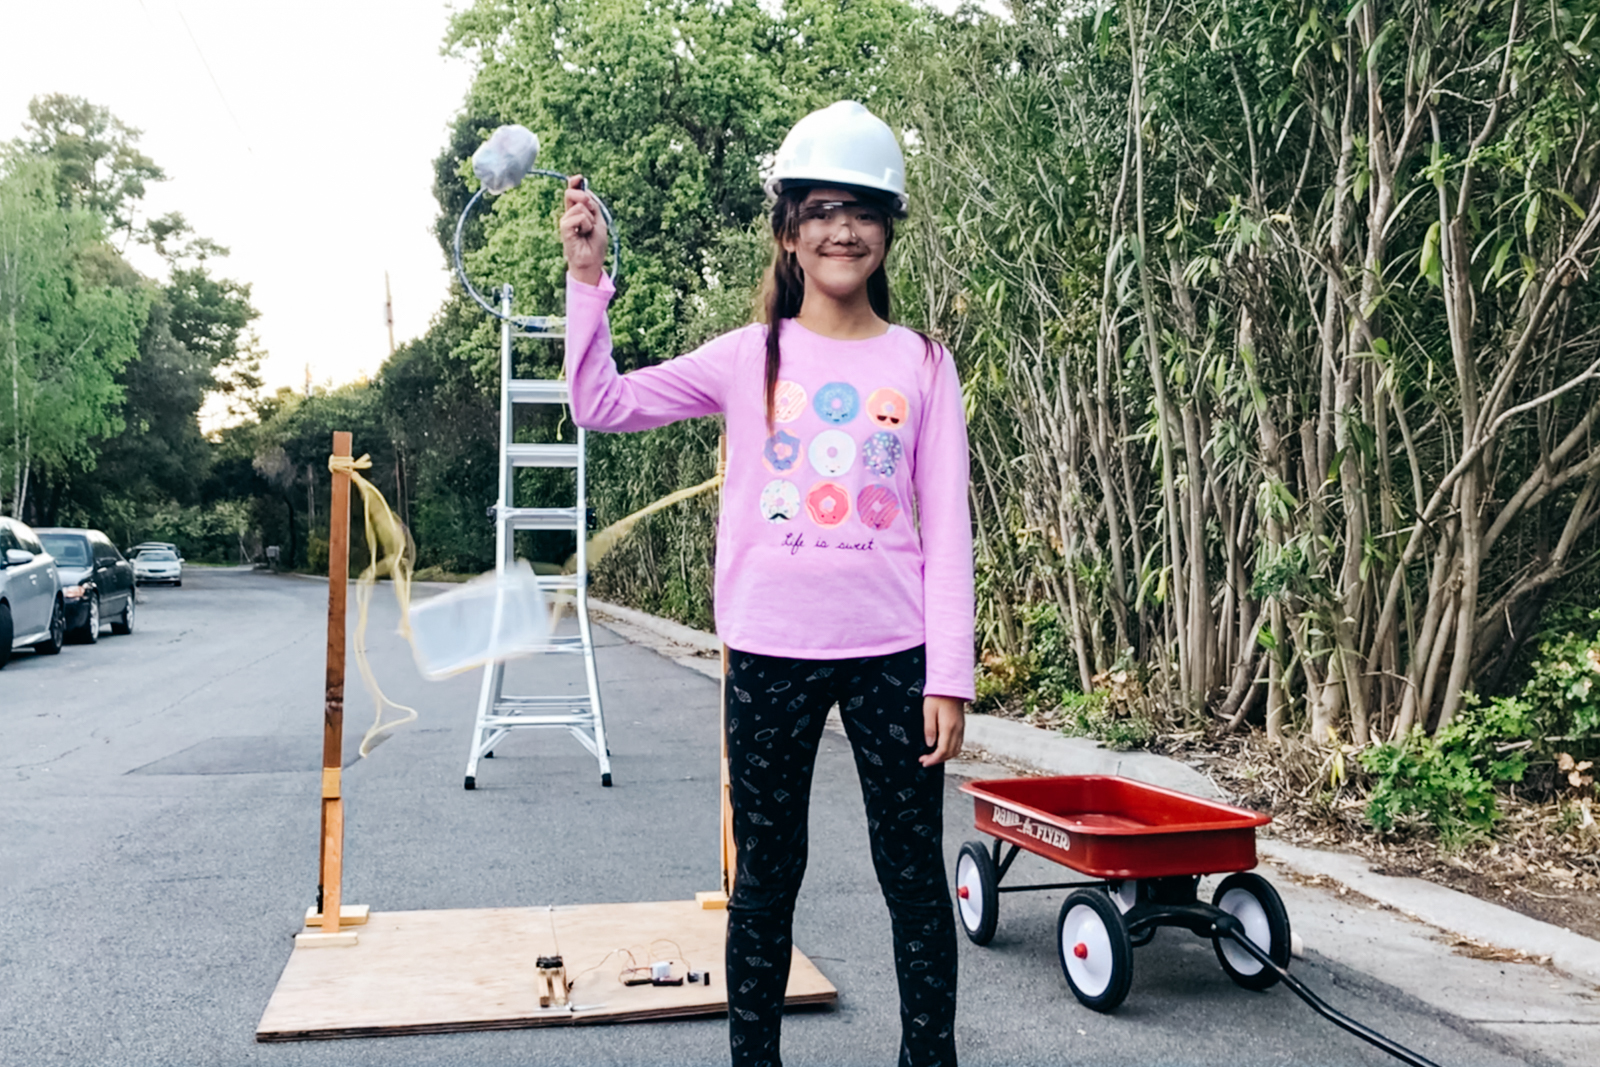 Amazon invests in the next generation of engineers - Image 2